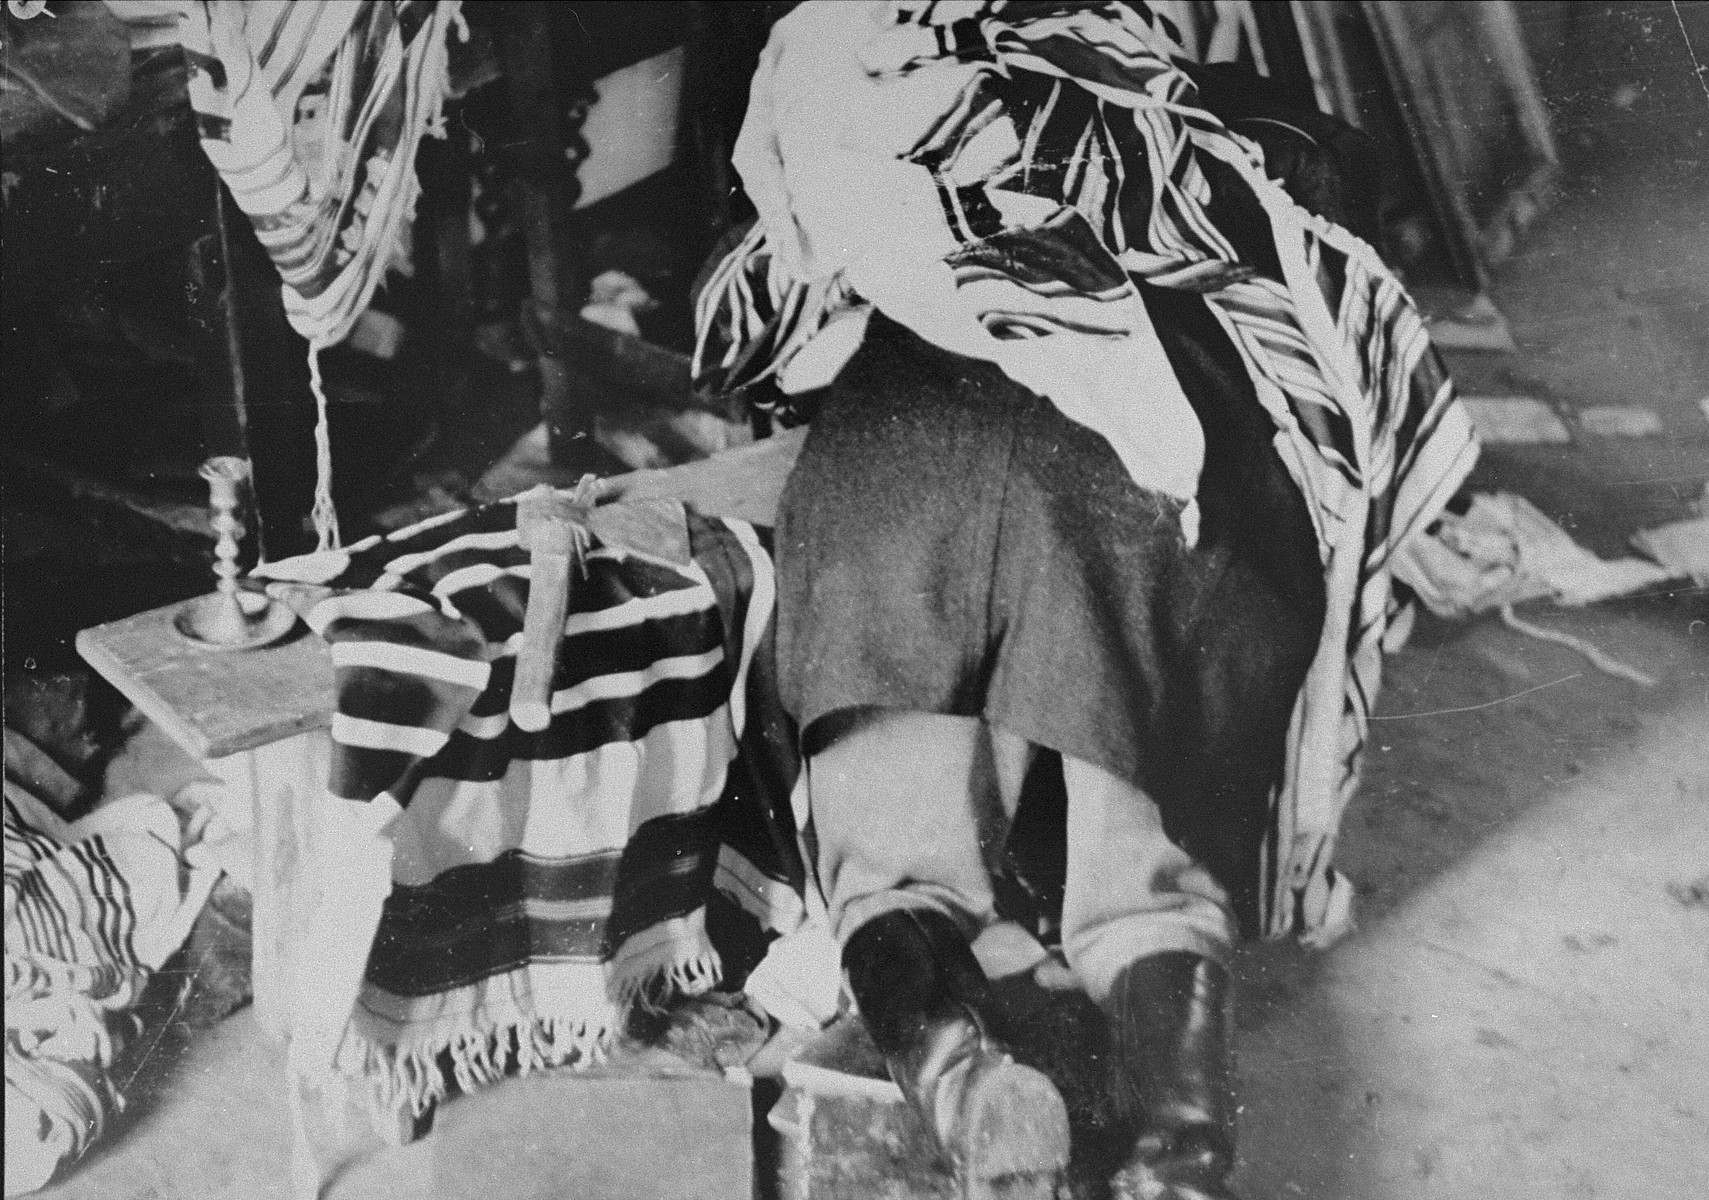 Synagogue vandalized by Lithuanians during June, 1941 pogrom in Kovno. A man, covered with a prayer shawl, lies over a bench in the synagogue. A hatchet is on the bench next to him.